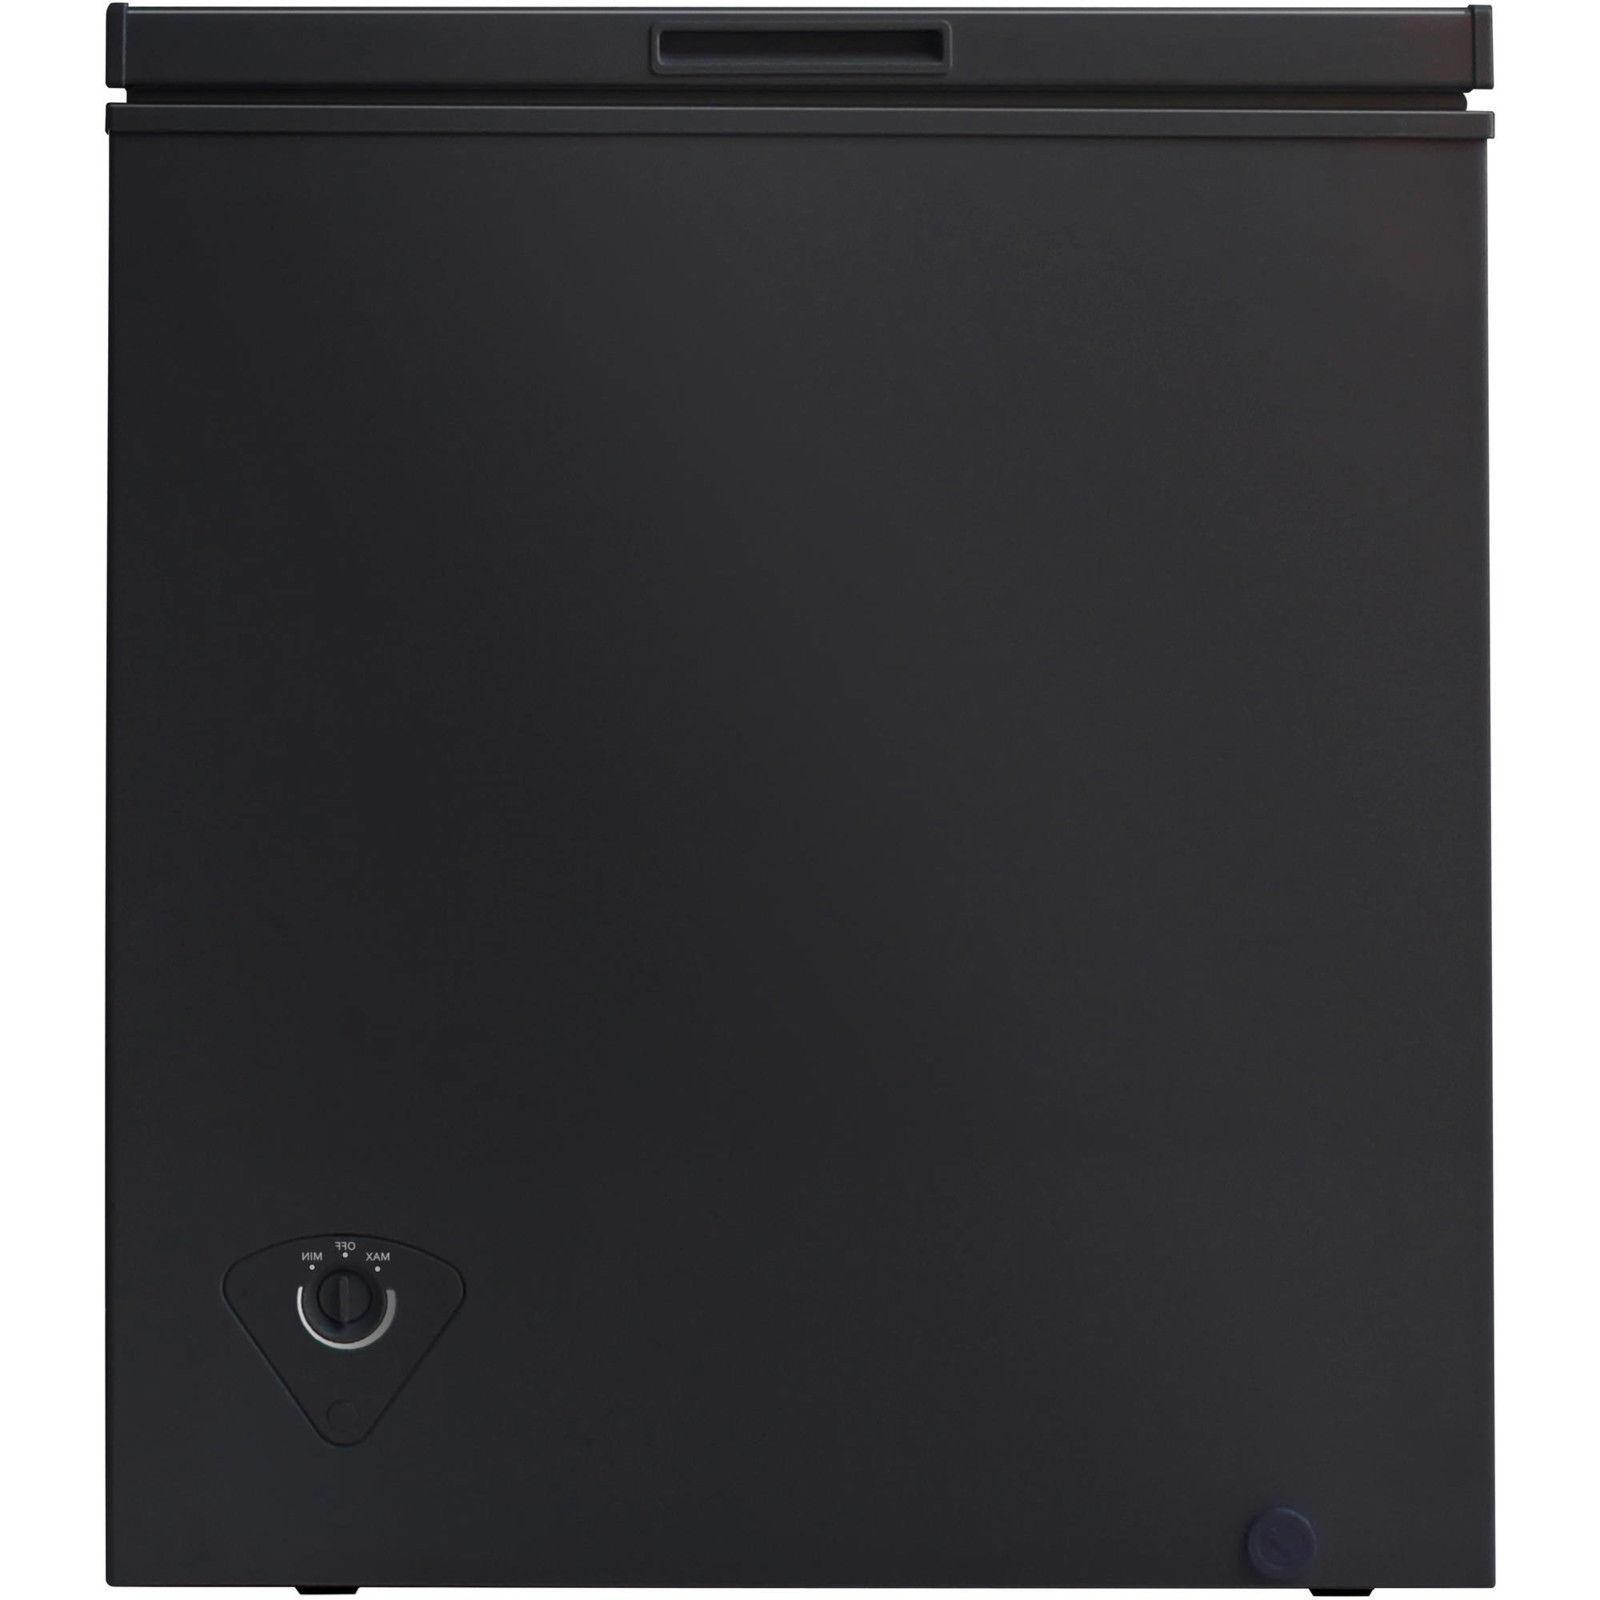 5.0 cu Deep Freezer Dorm Home Black NEW